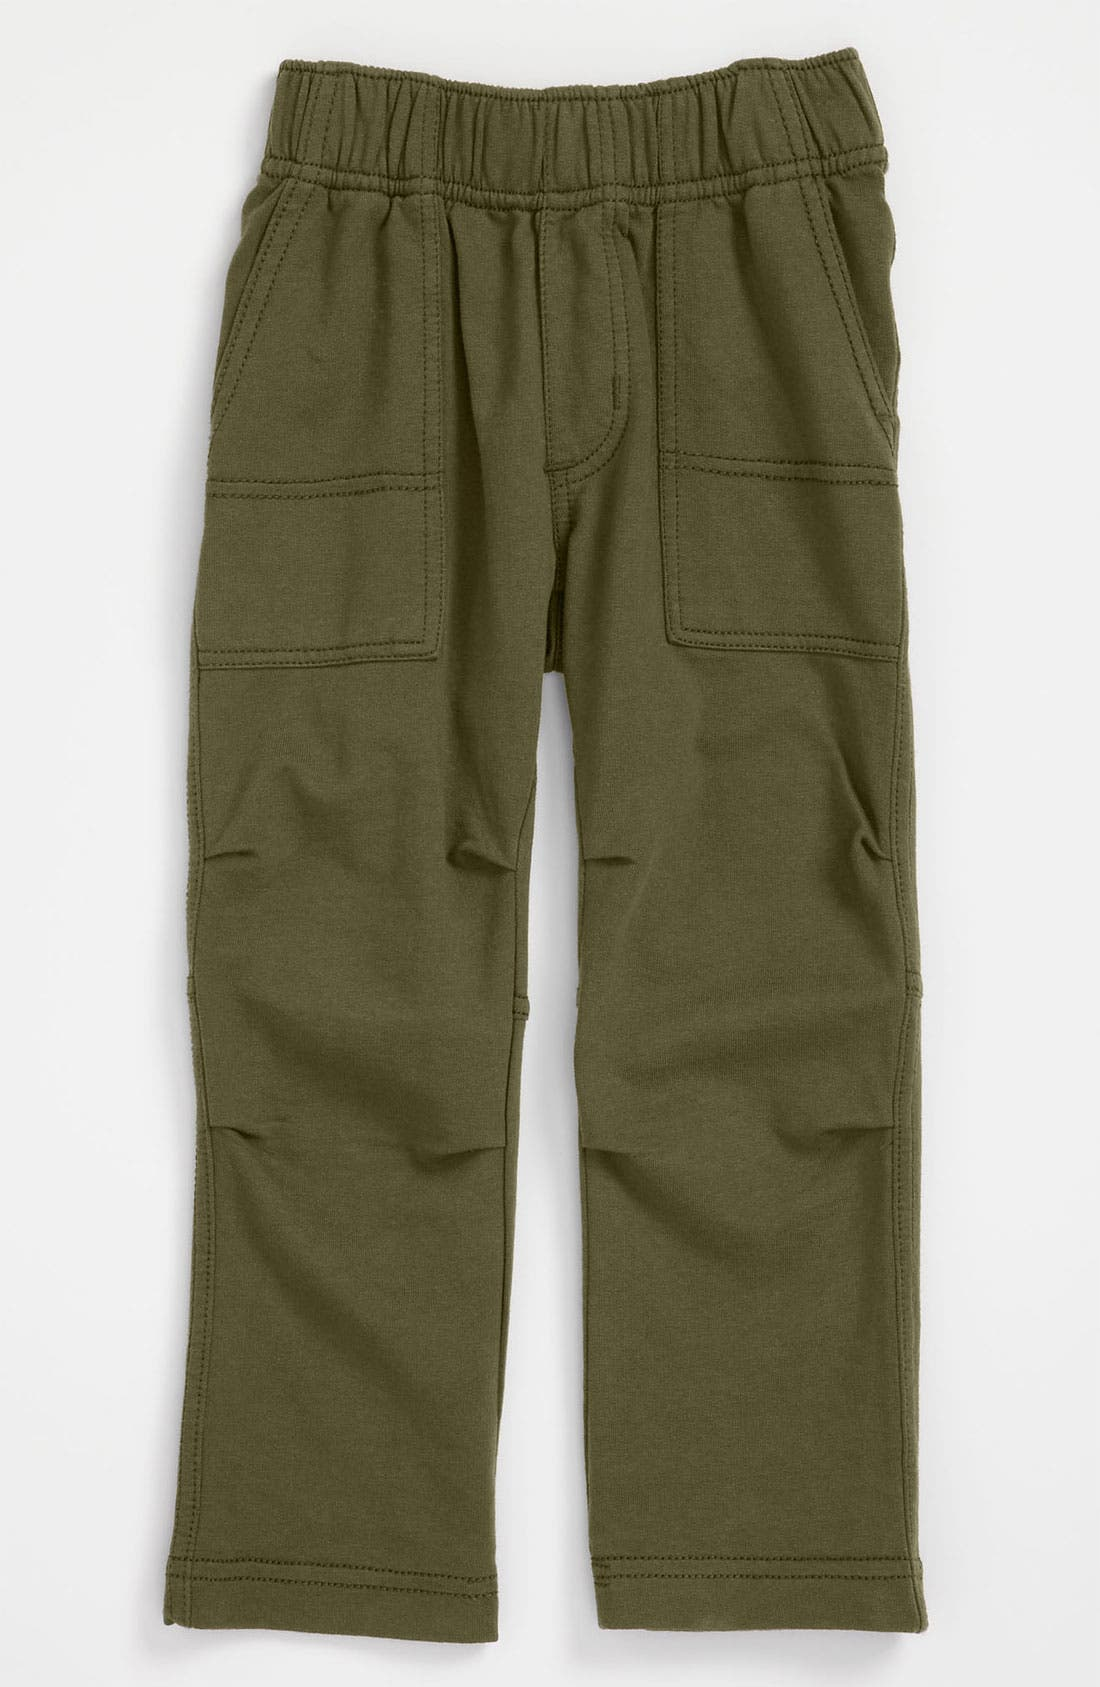 Alternate Image 1 Selected - Tea Collection Knit Pants (Toddler)